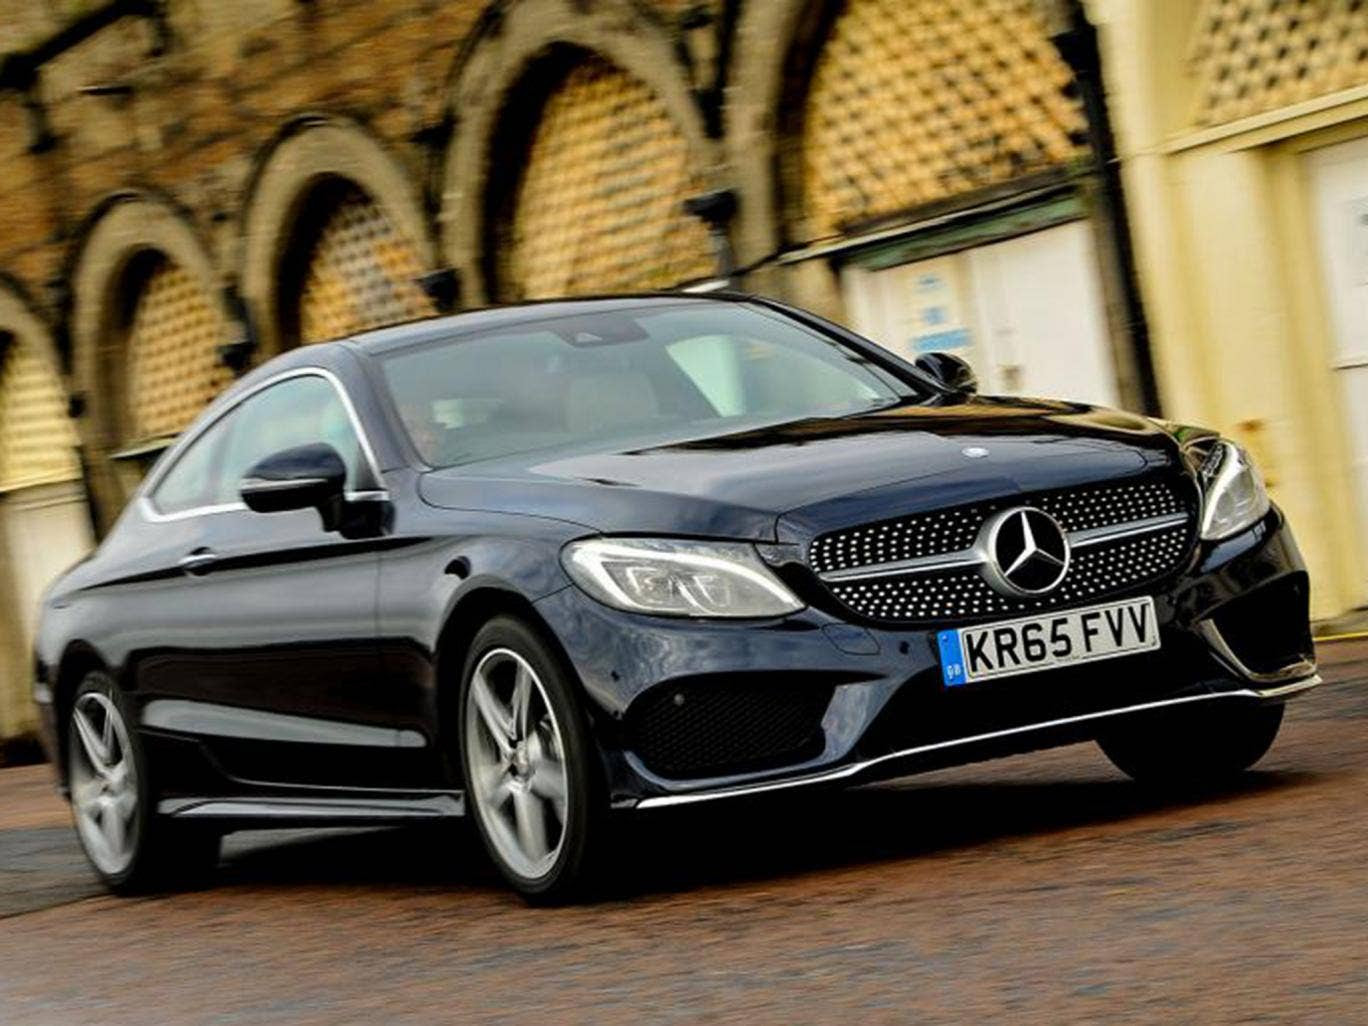 2016 Mercedes C220d AMG Line Coupé, car review: A grand ...